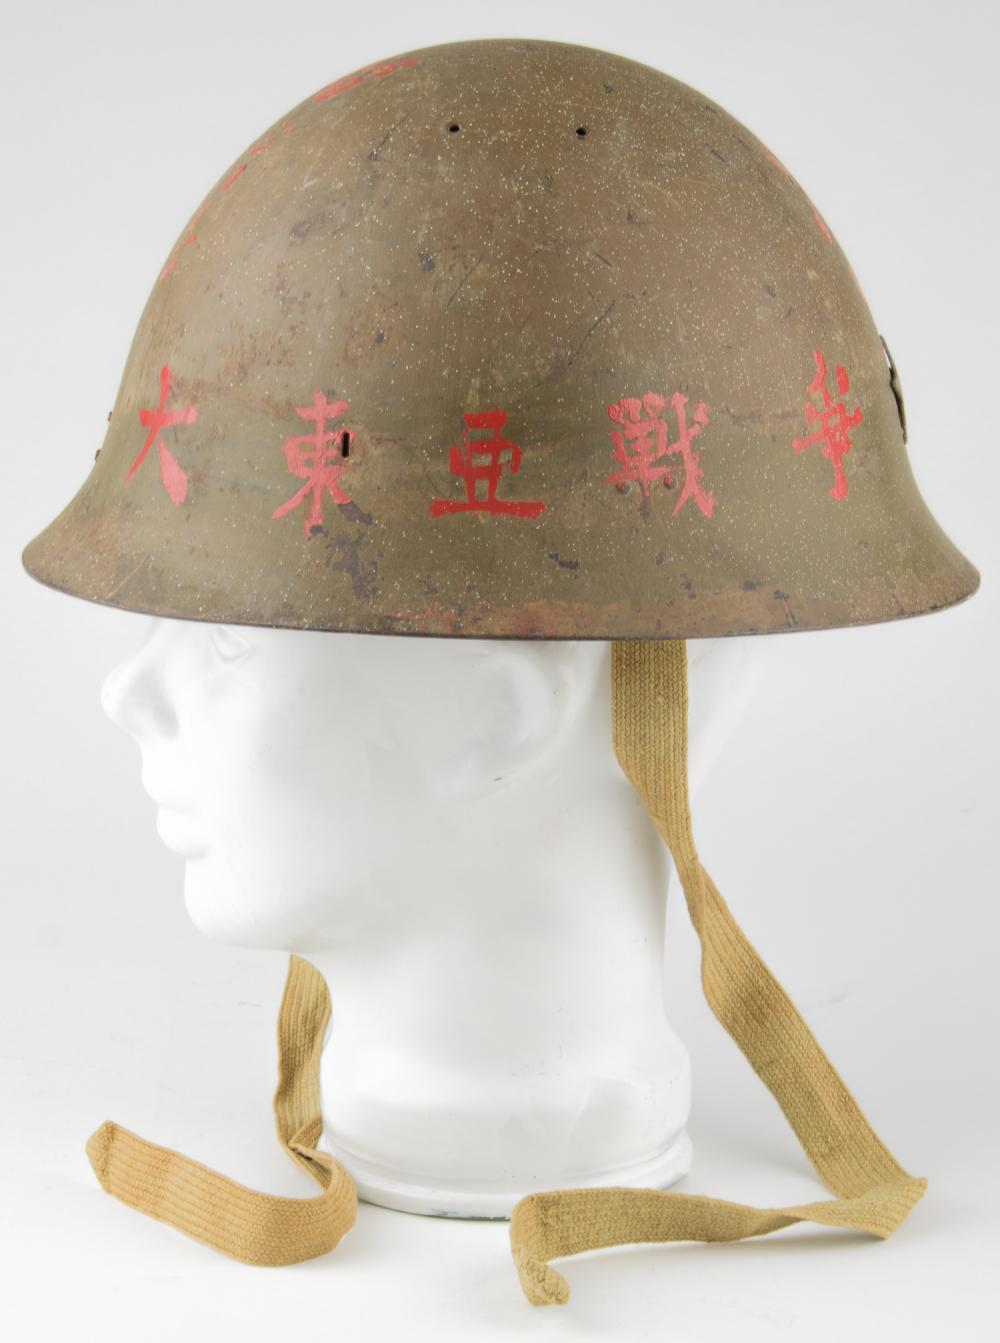 CAPTURED, BLOOD-STAINED JAPANESE HELMET WITH PRESENTATION